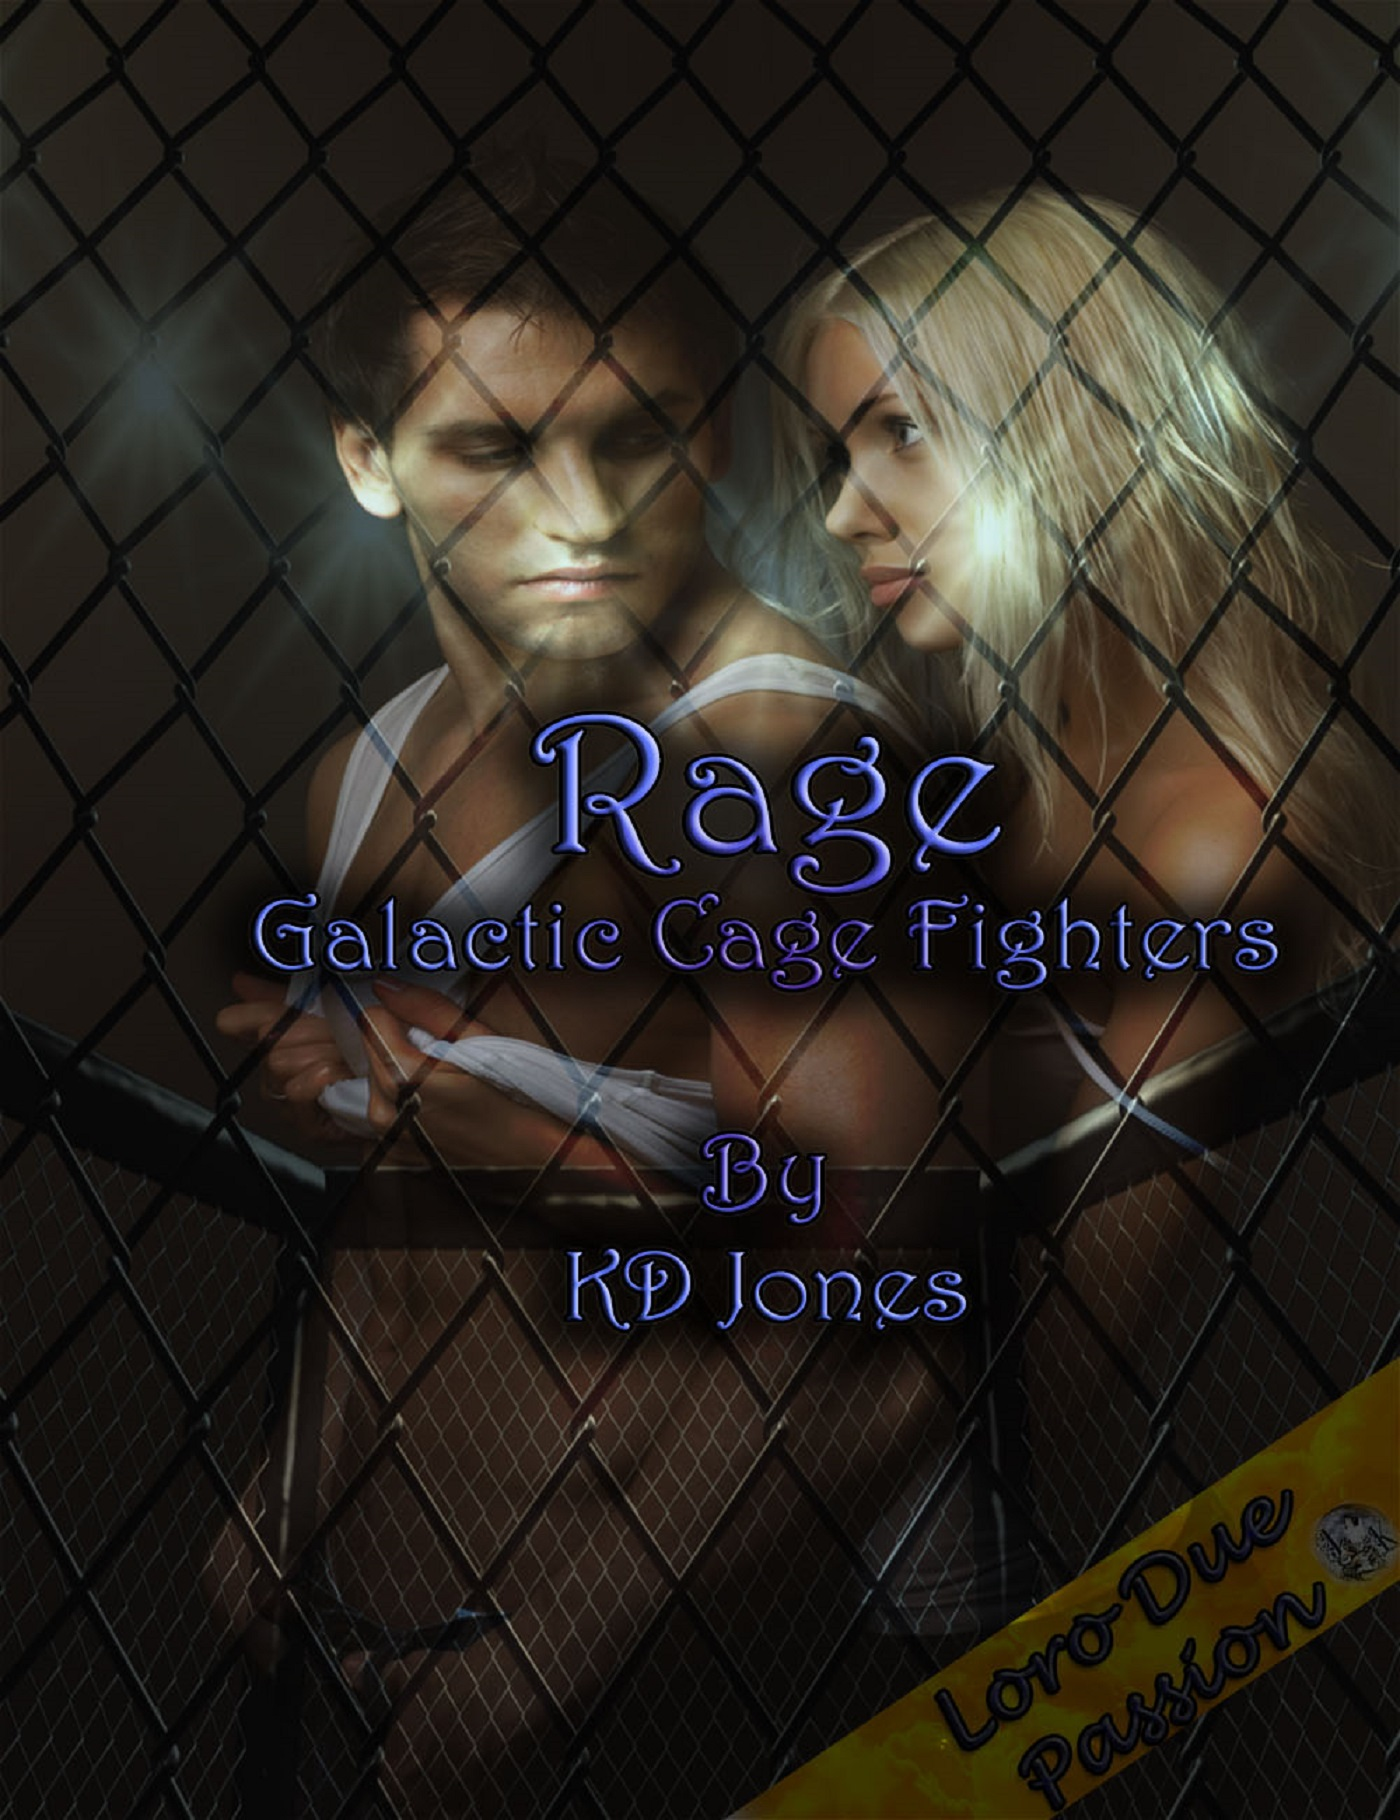 K.D. Jones - Rage: Galactic Cage Fighters